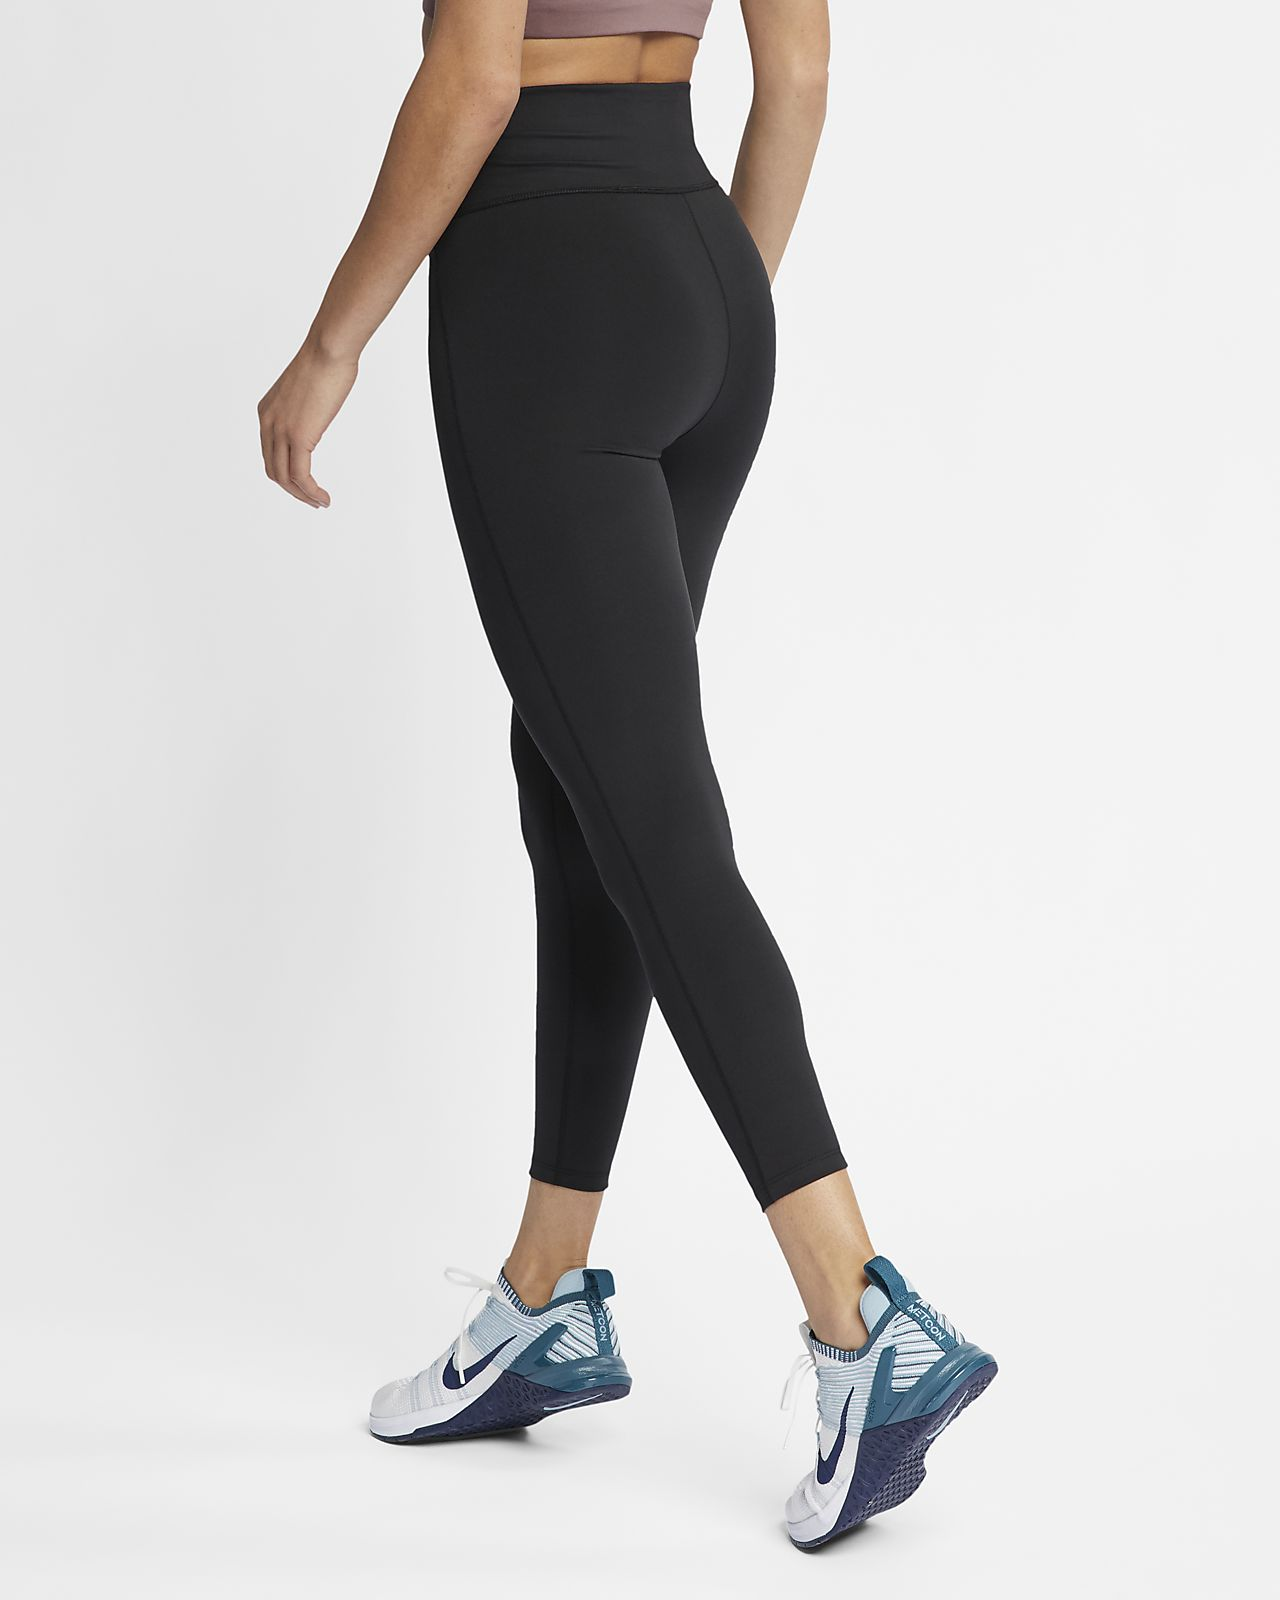 28fe56a67 Nike Sculpt Women s Training Crops. Nike.com